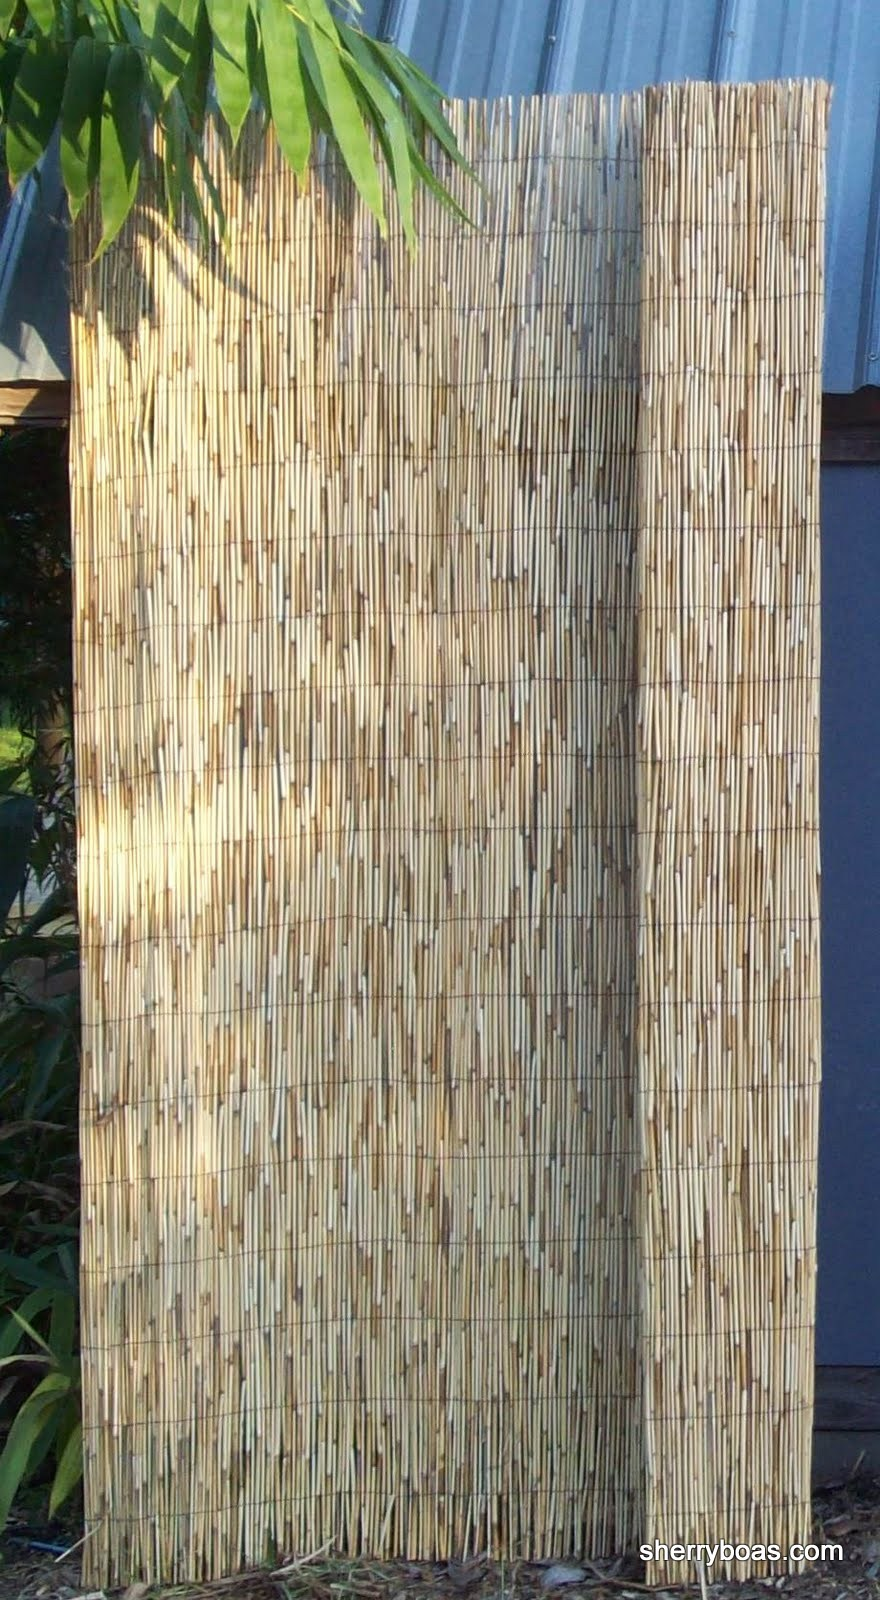 Beautiful Bamboo Photos Of Reed Fencing